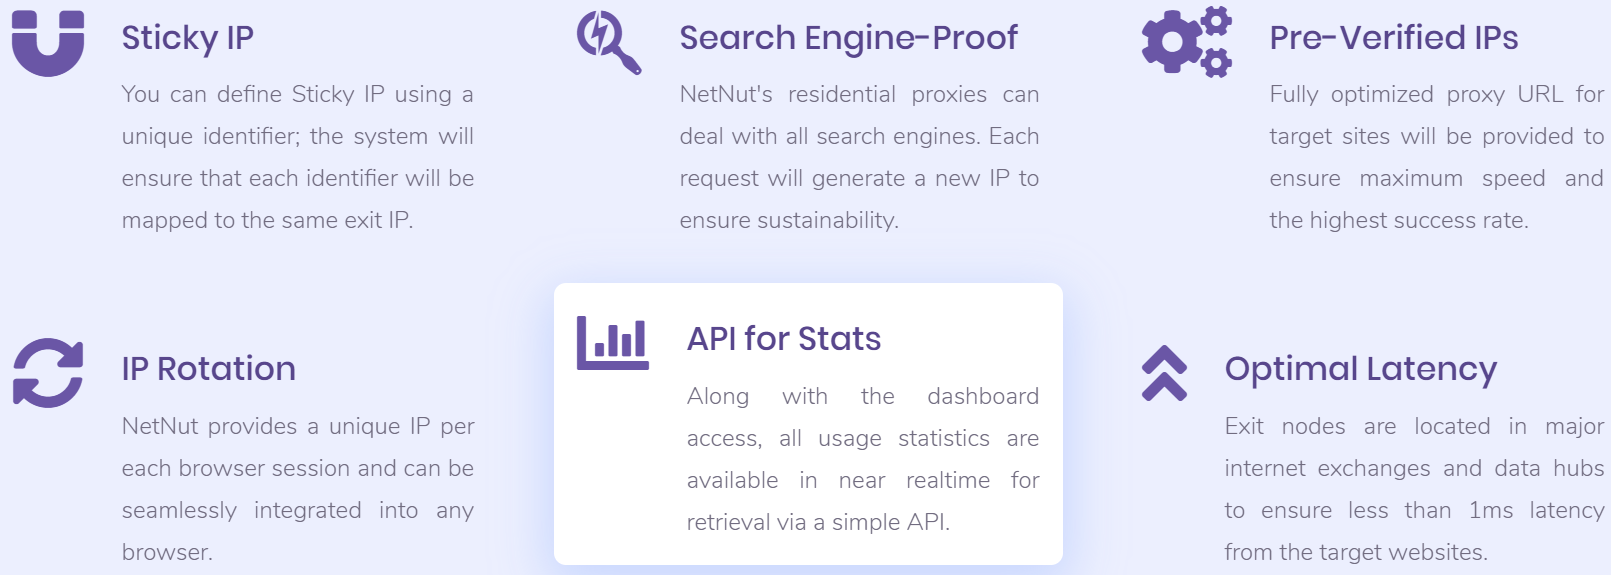 Netnut.io Residential IP Features